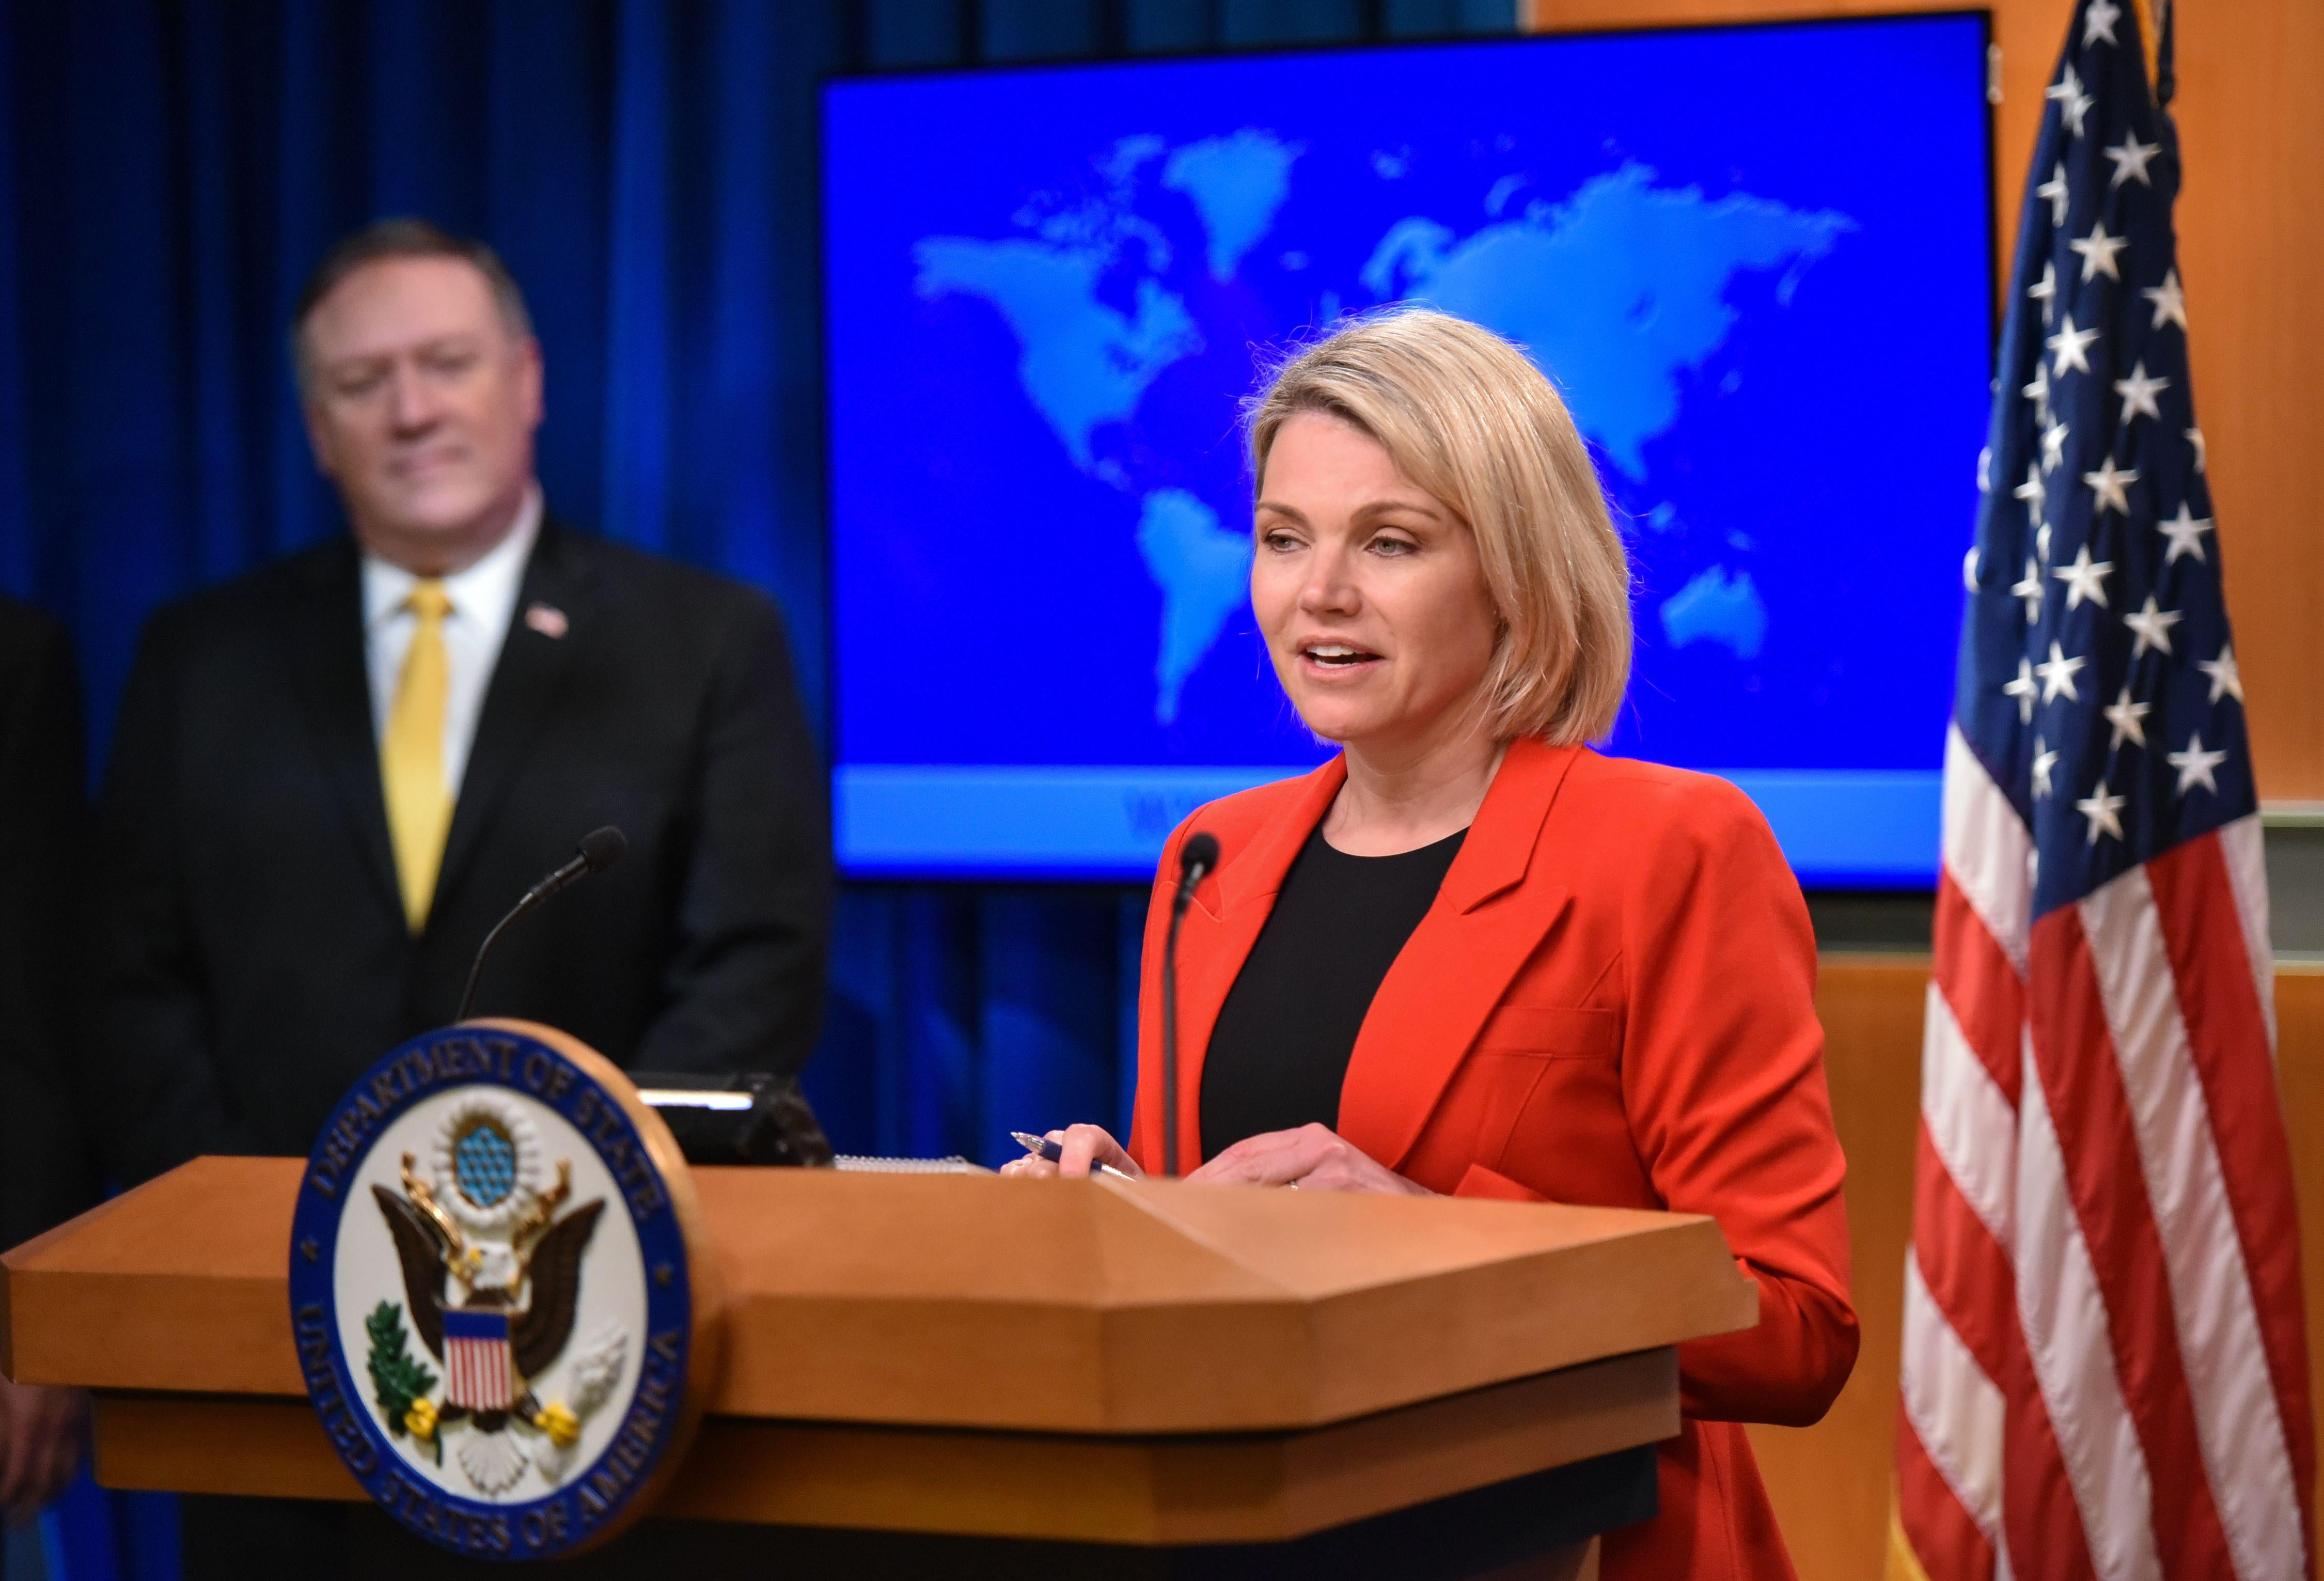 State Department spokesperson Heather Nauert introduces Secretary of State Mike Pompeo in the Press Briefing Room at the  Department of State in Washington, DC.